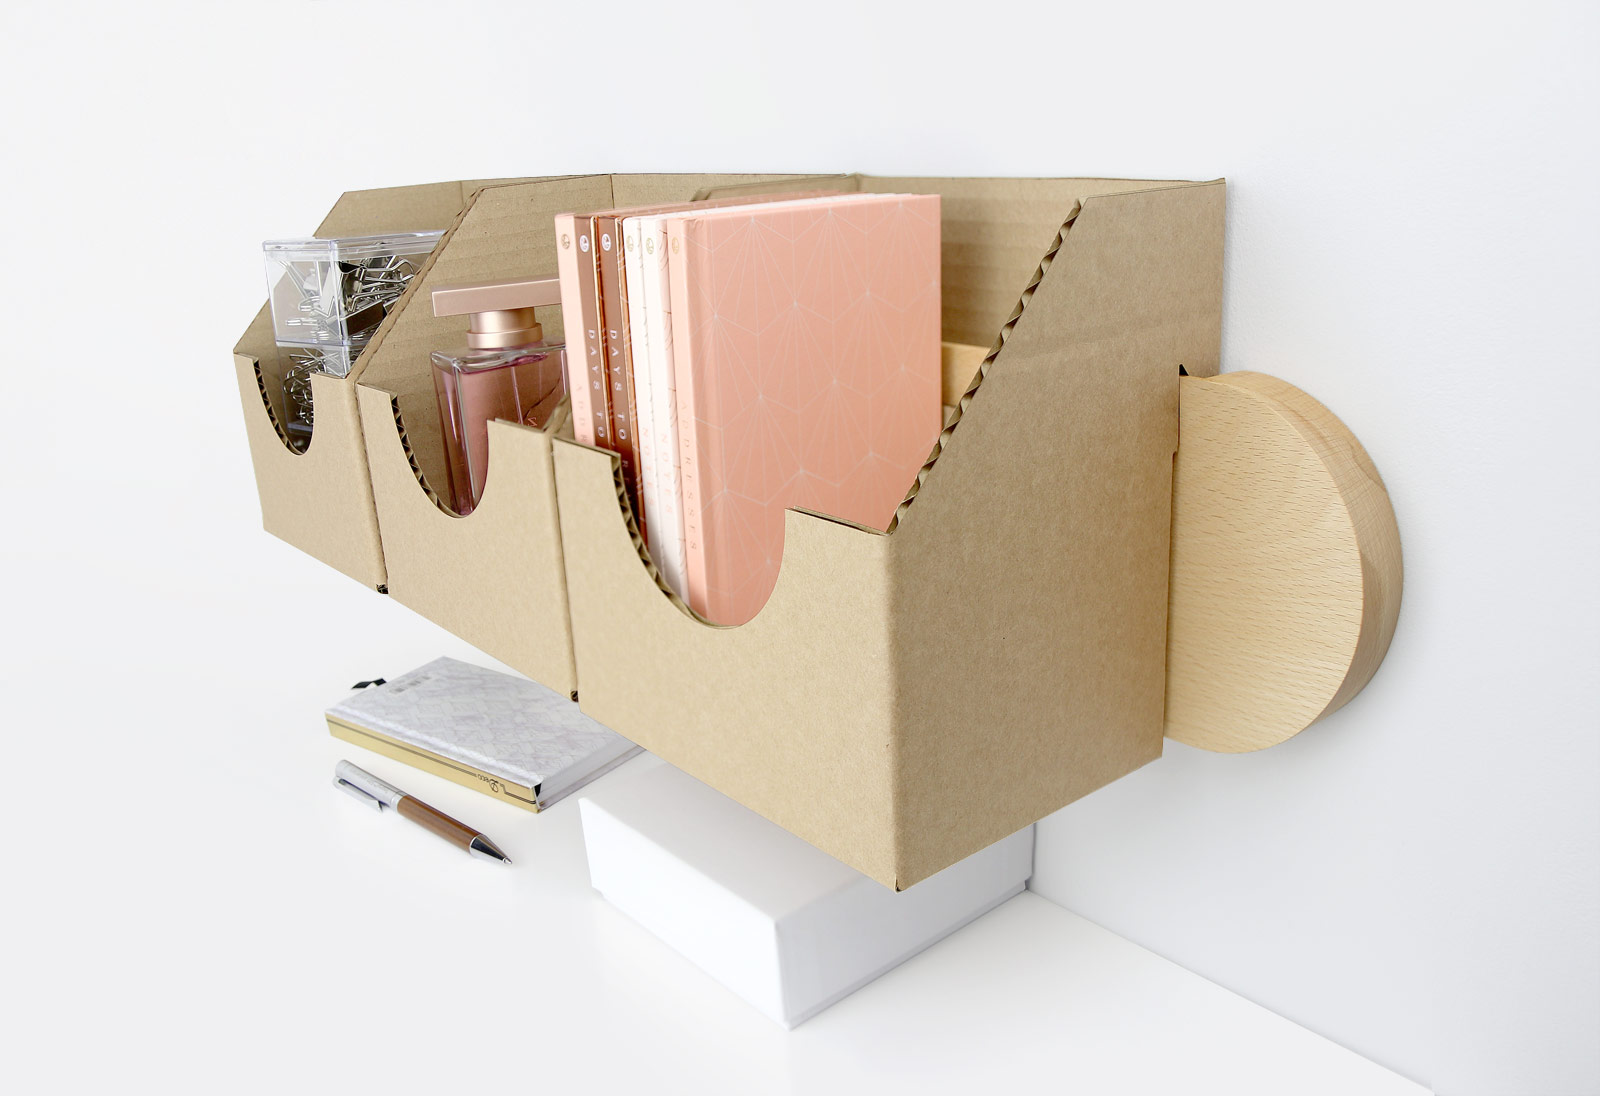 Cardboard Wall-Mounted Catch-all Box